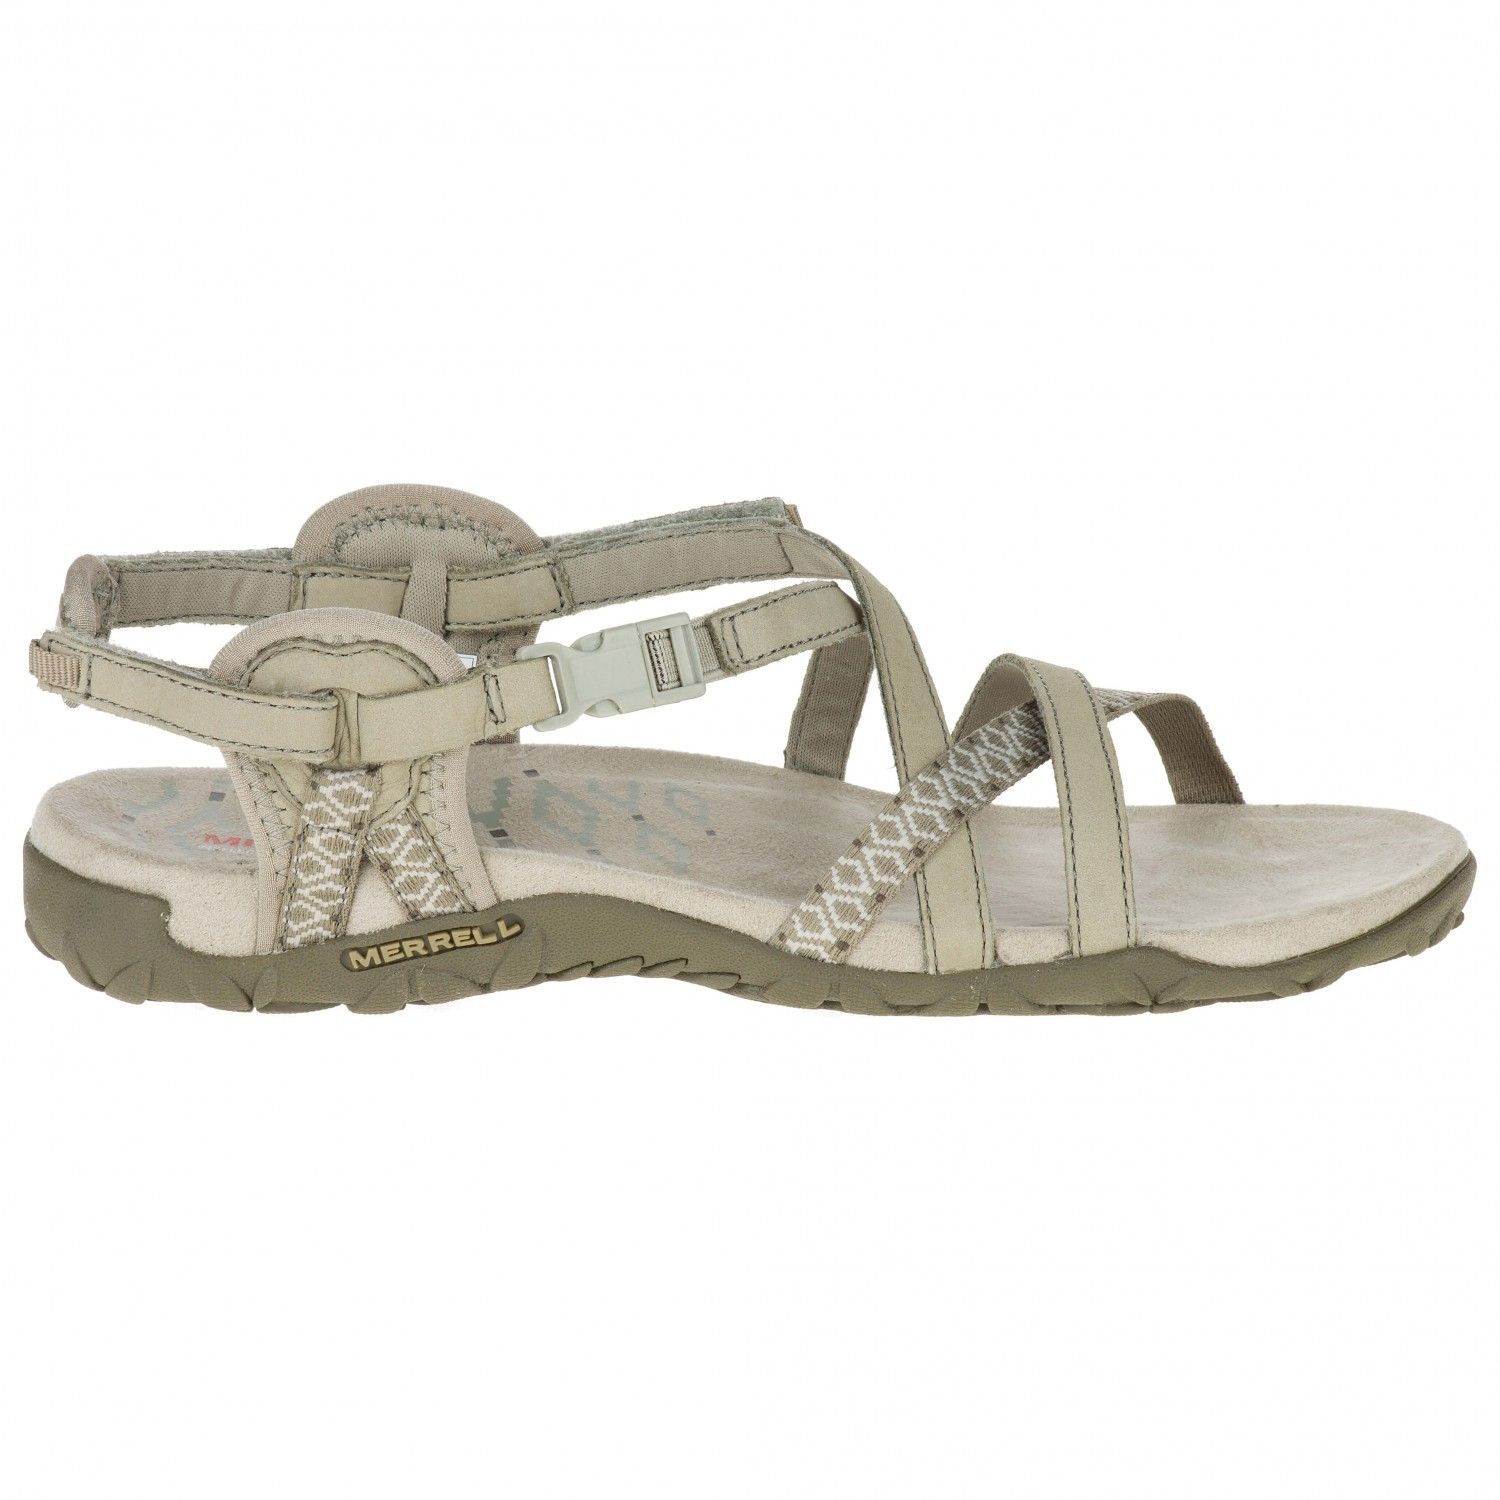 11a0d774418 Merrell Terran Lattice II - Sandals Women s